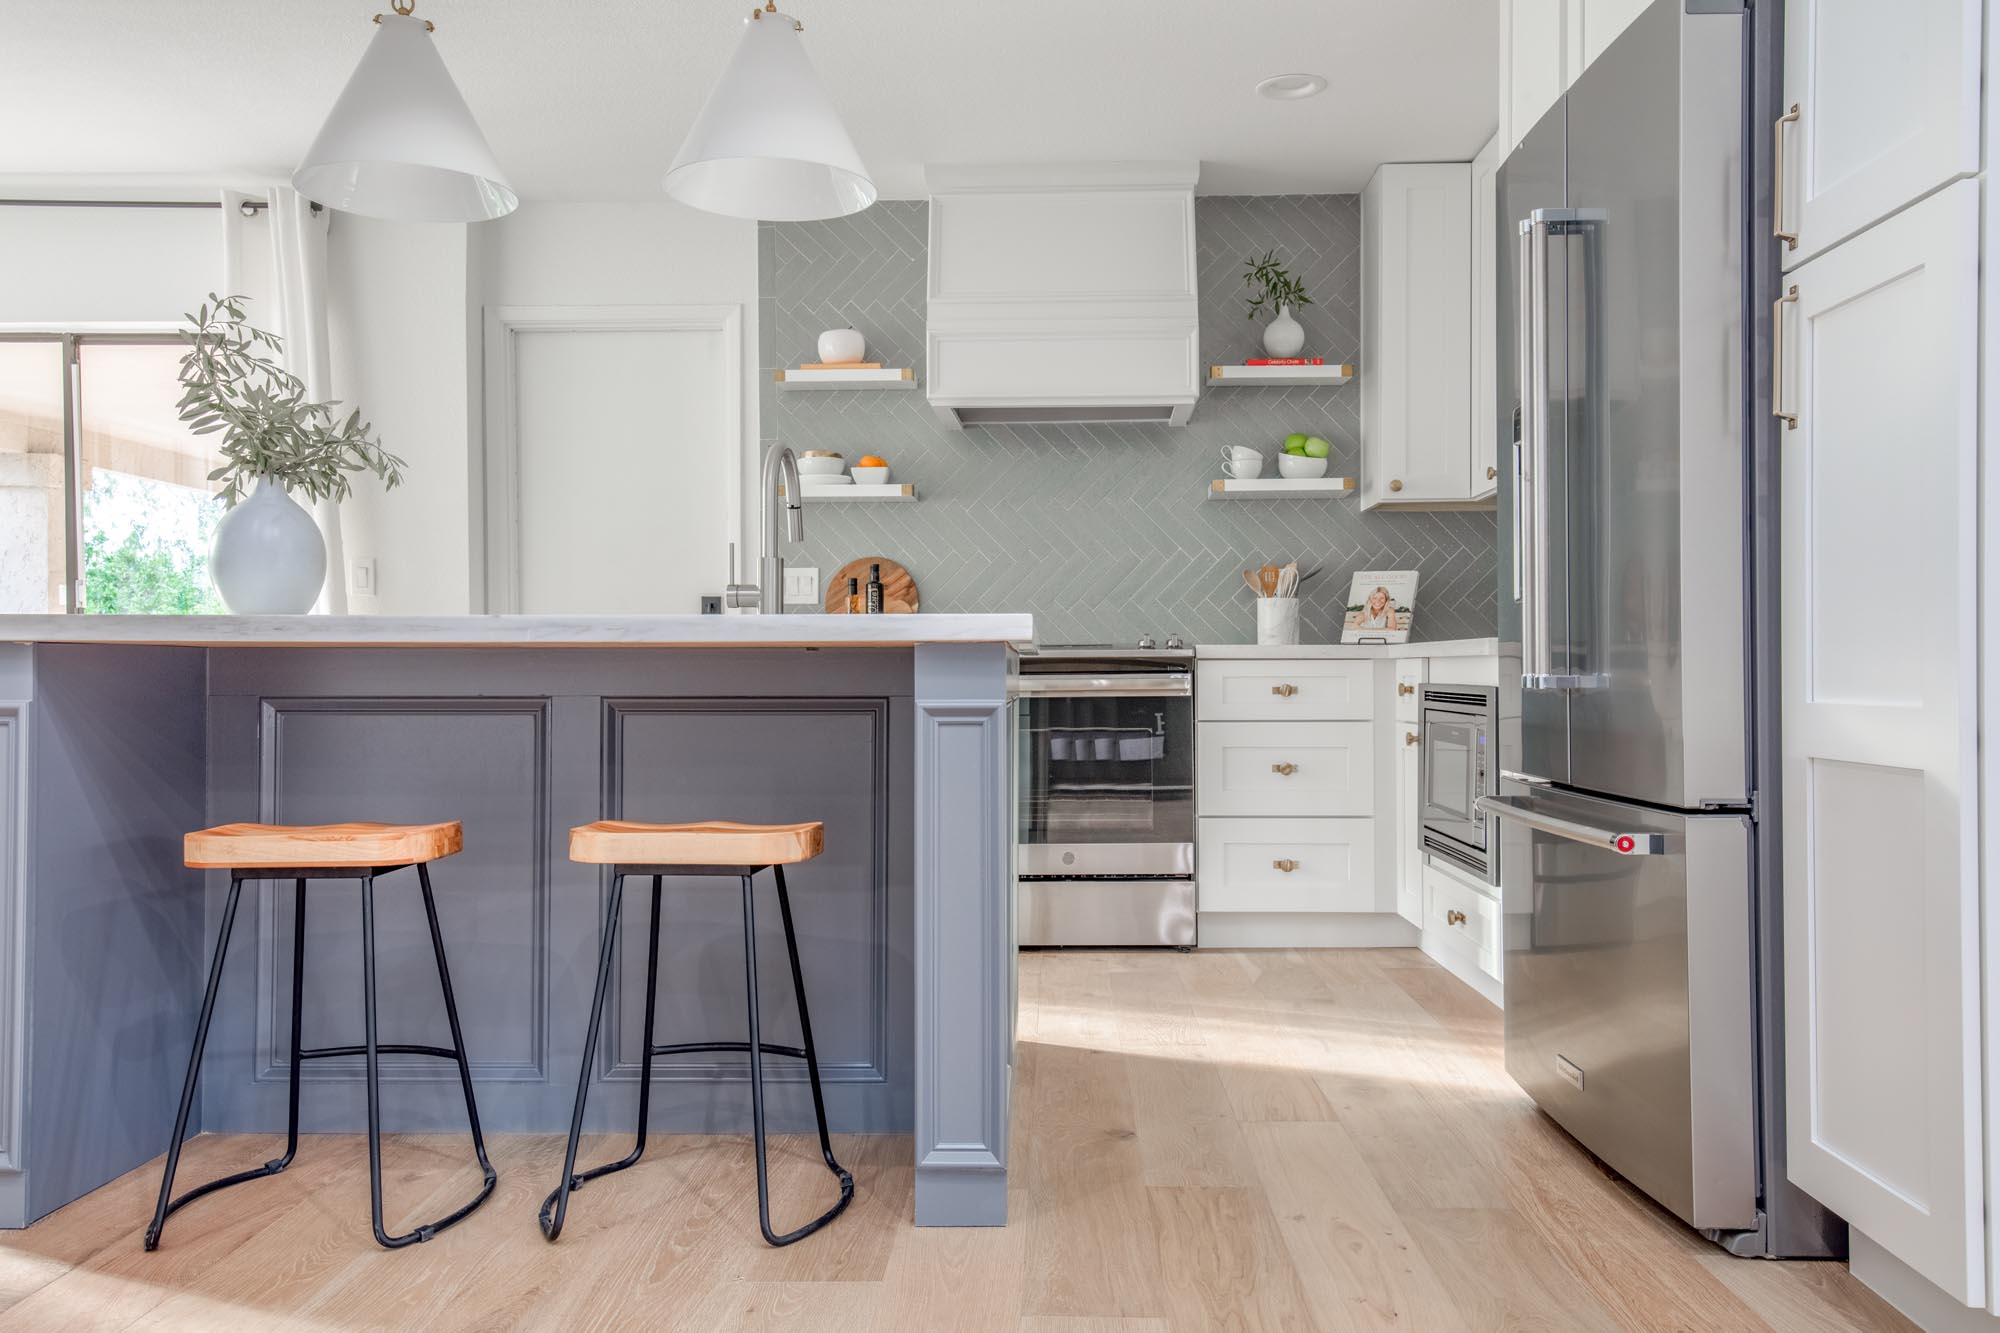 Kitchen with two bar stool and vase with plant on center island